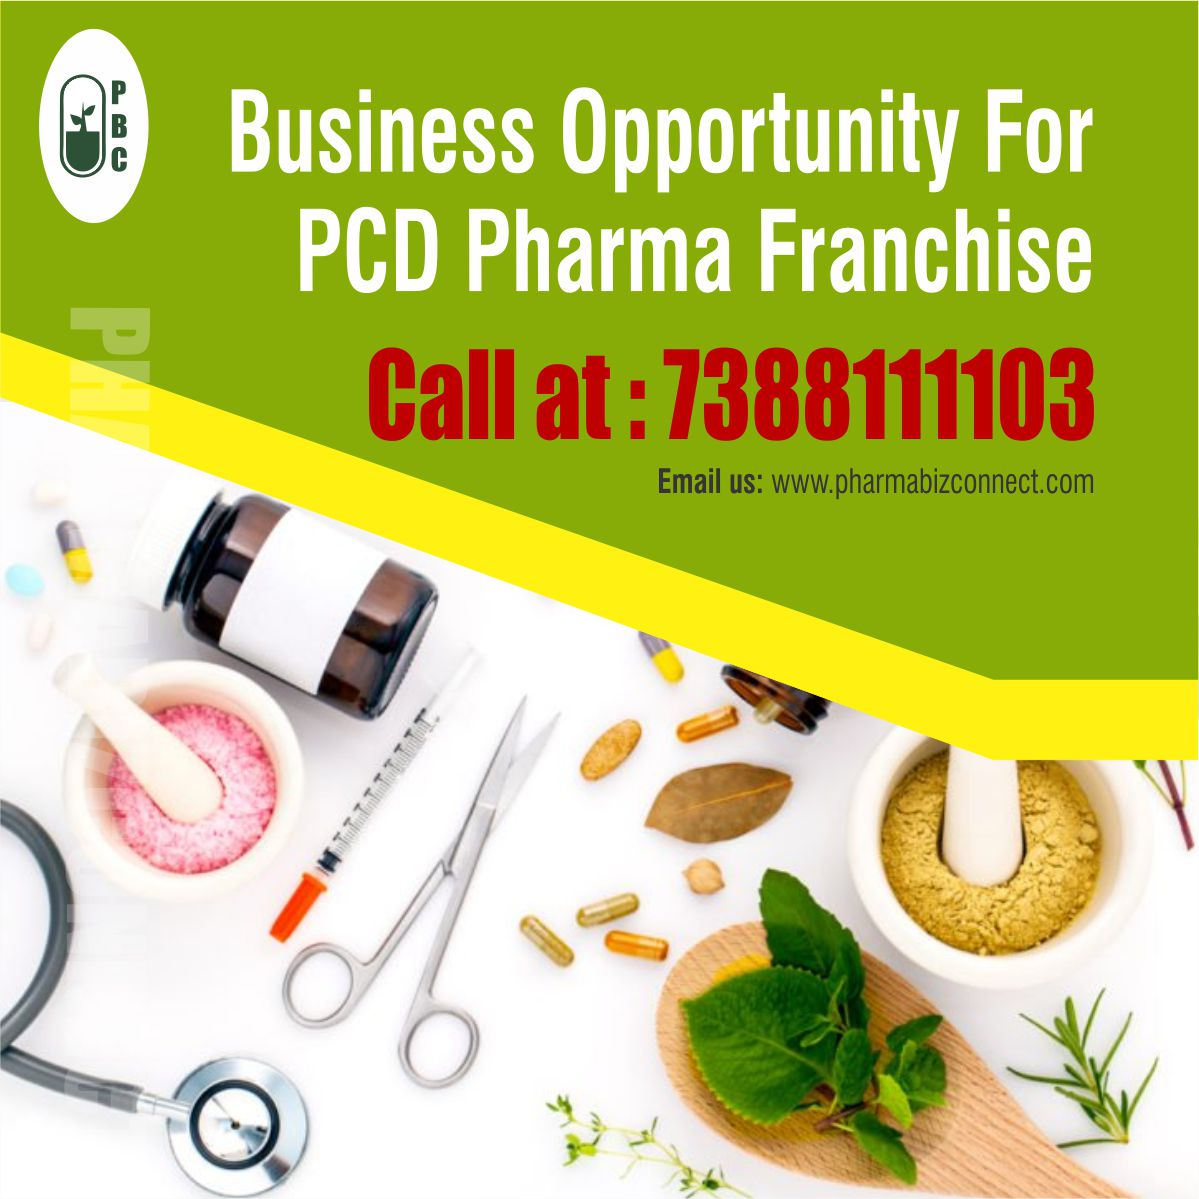 Business Opportunity For PCD Pharma Franchise